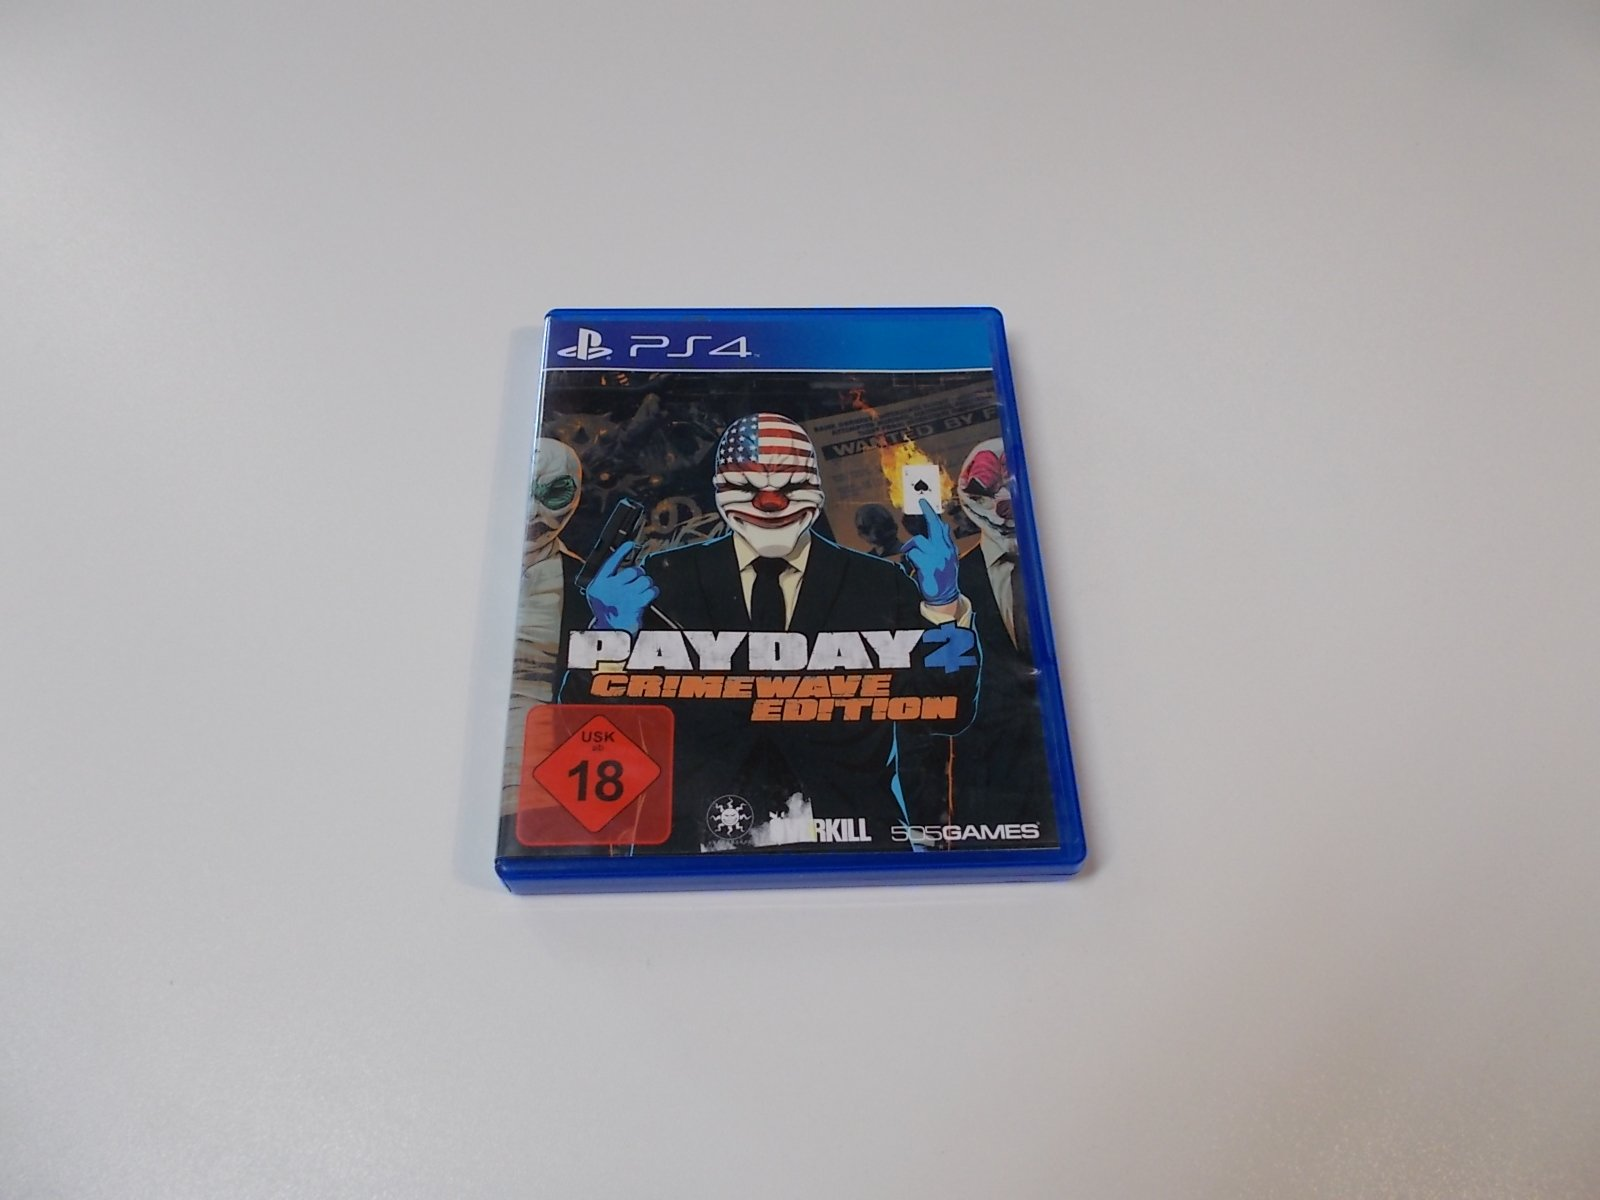 Payday 2 Crimewave Edition - GRA Ps4 - Opole 0542